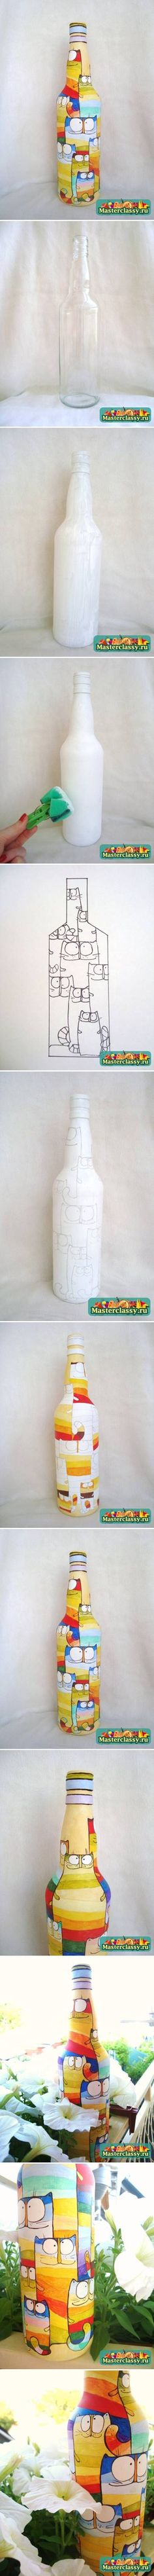 DIY Bottle of Acrylic Cat Painting